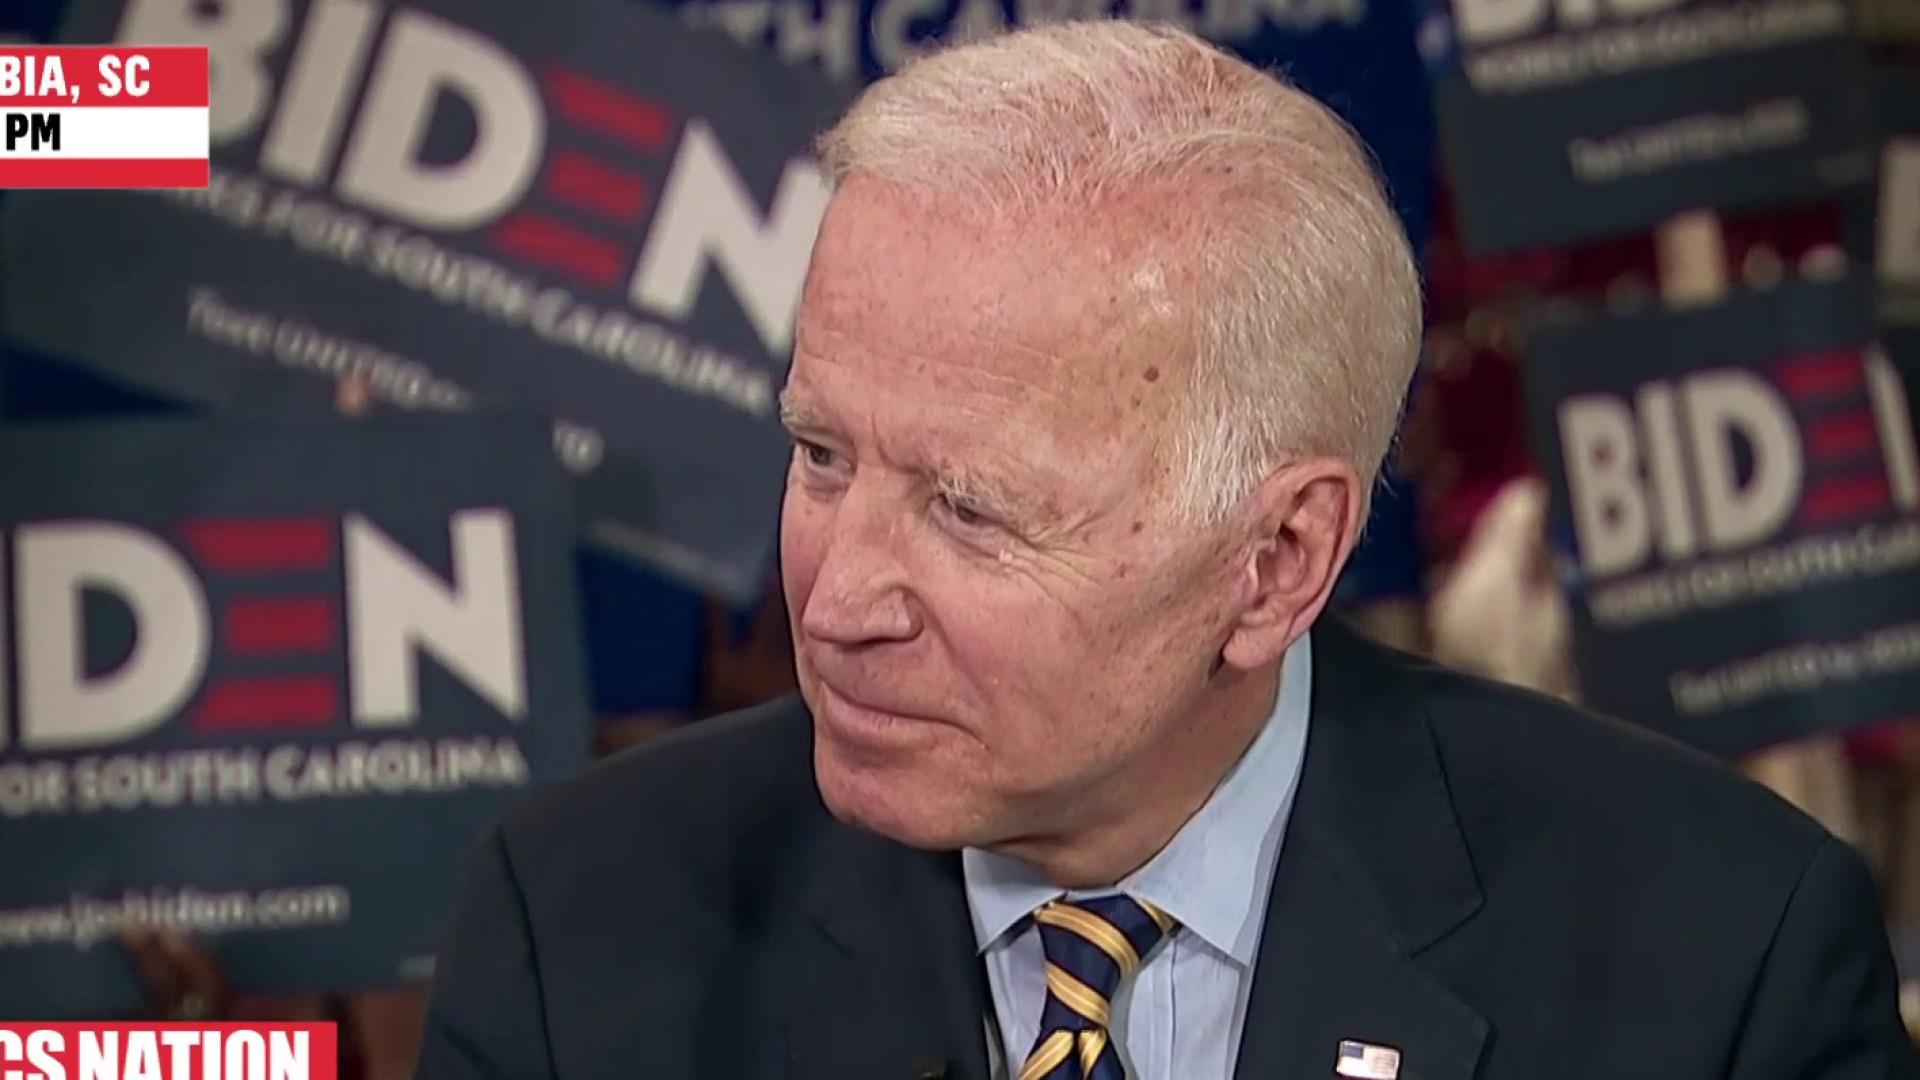 Joe Biden responds to controversy over his comments about segregationists